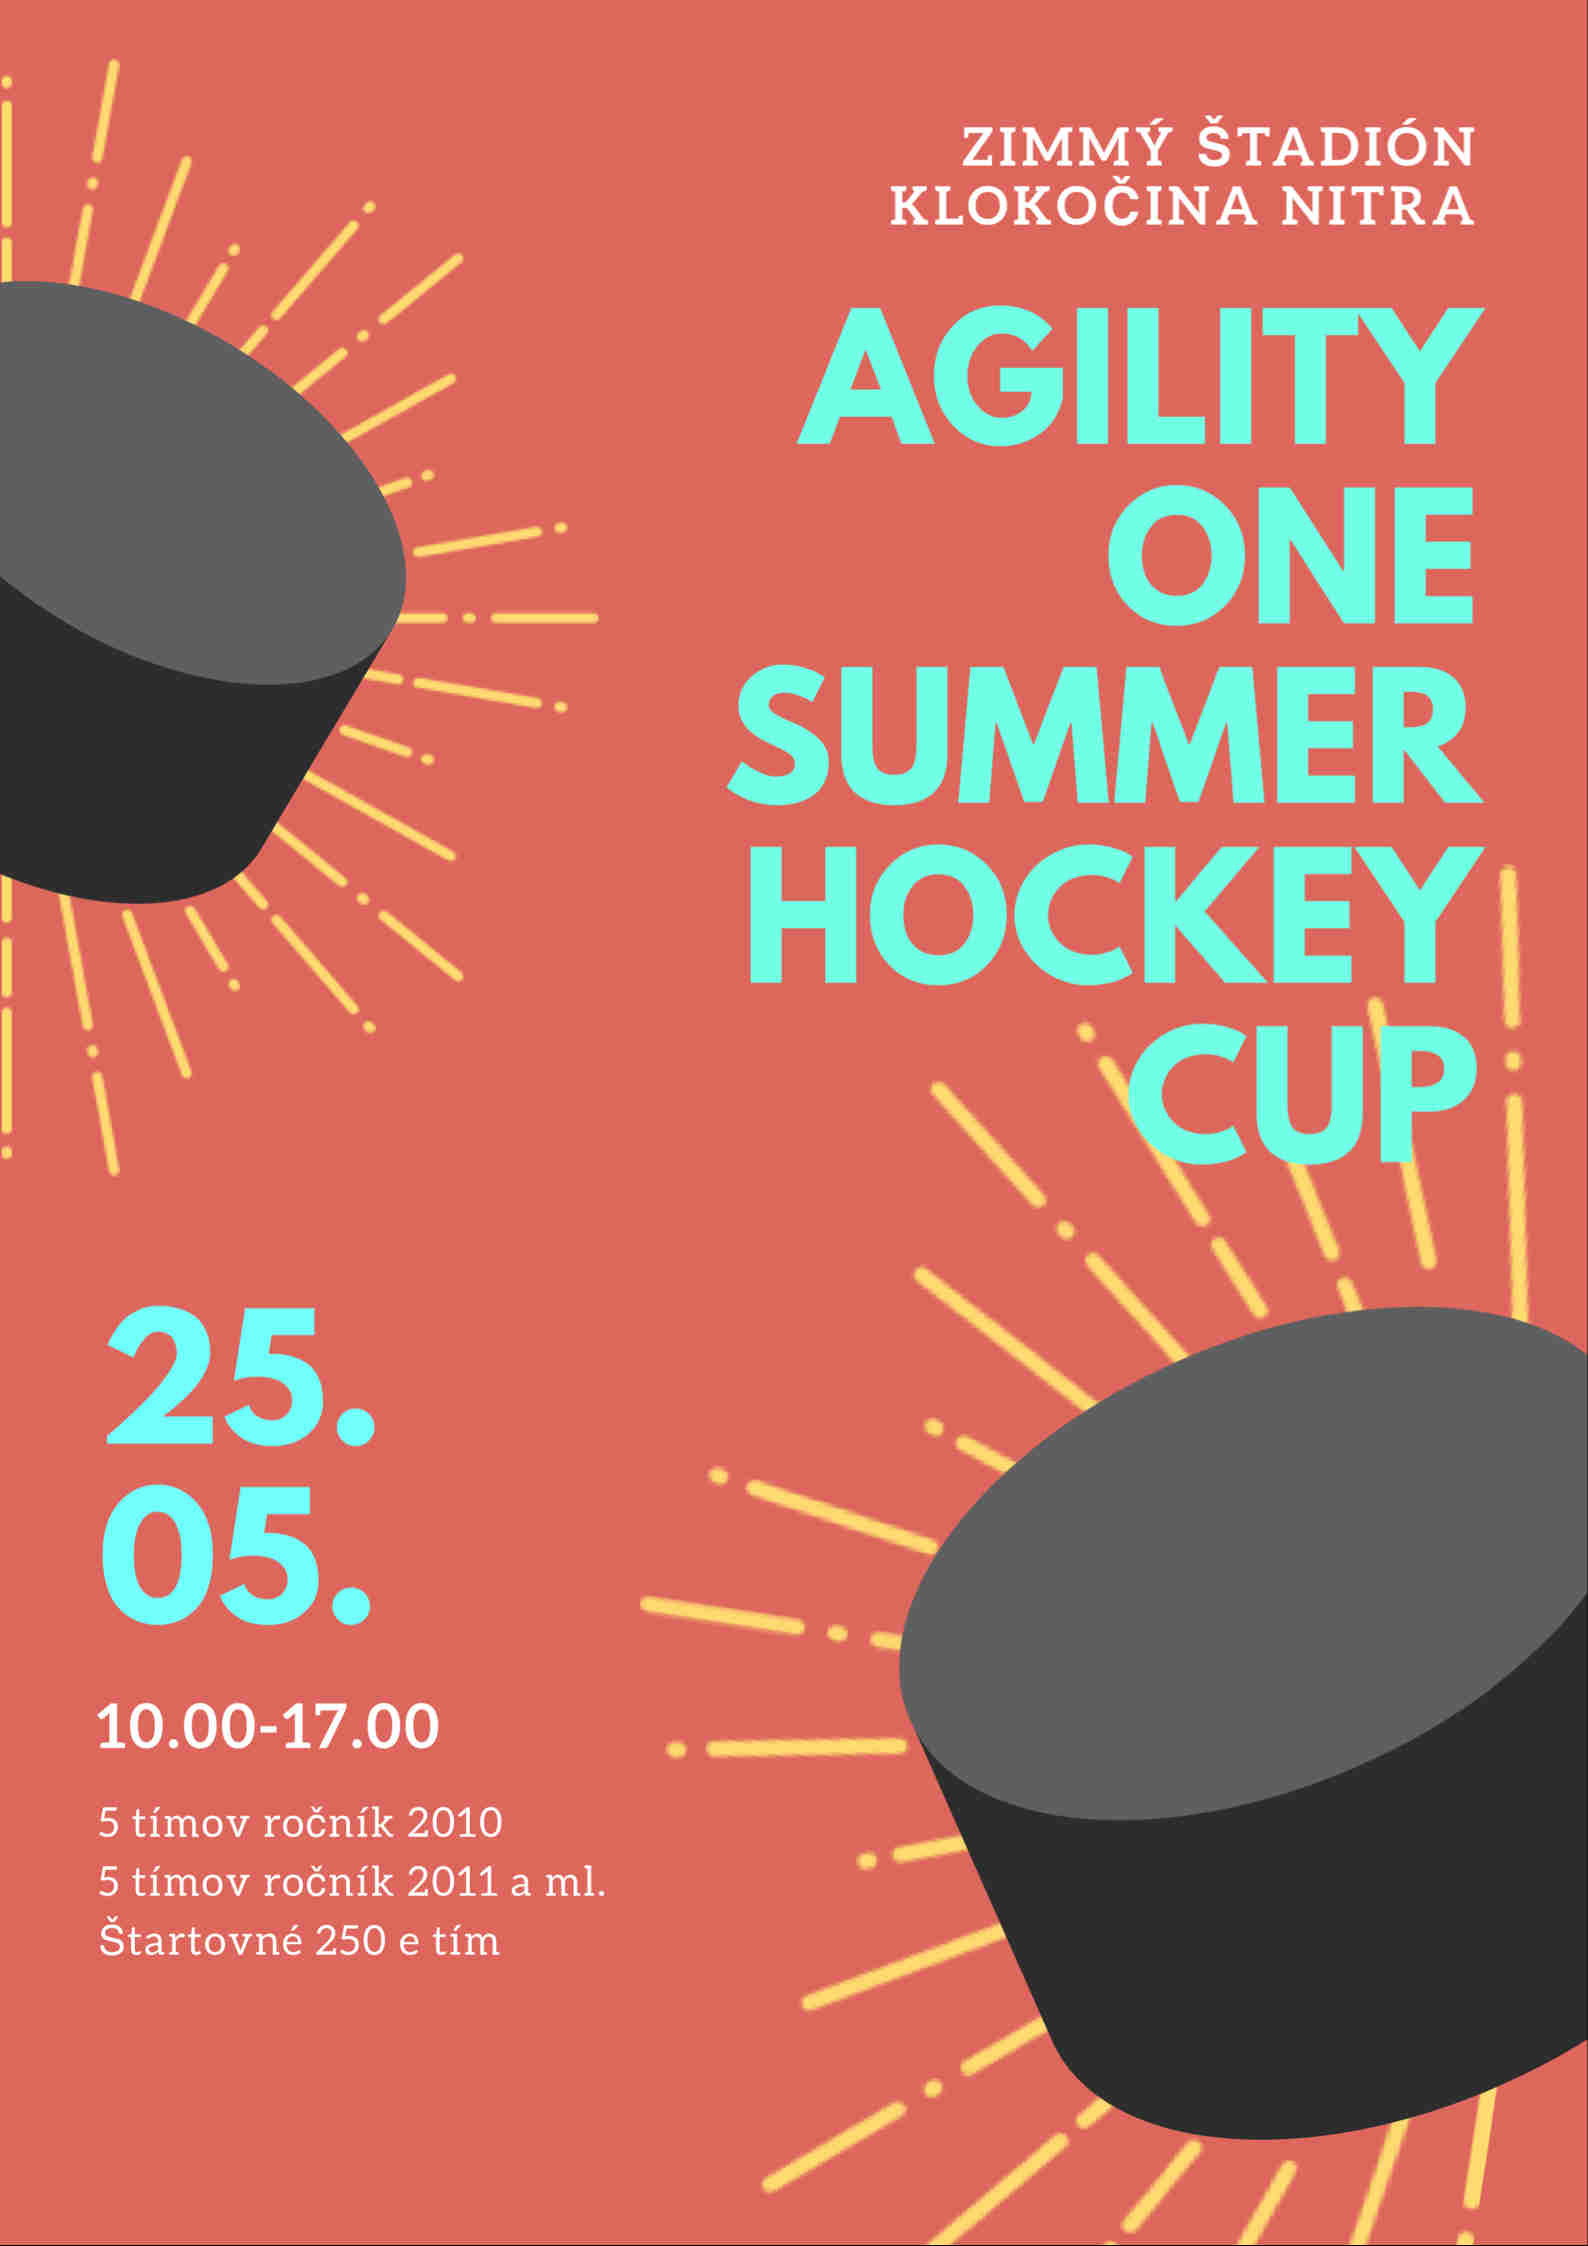 Agility one summer hockey cup